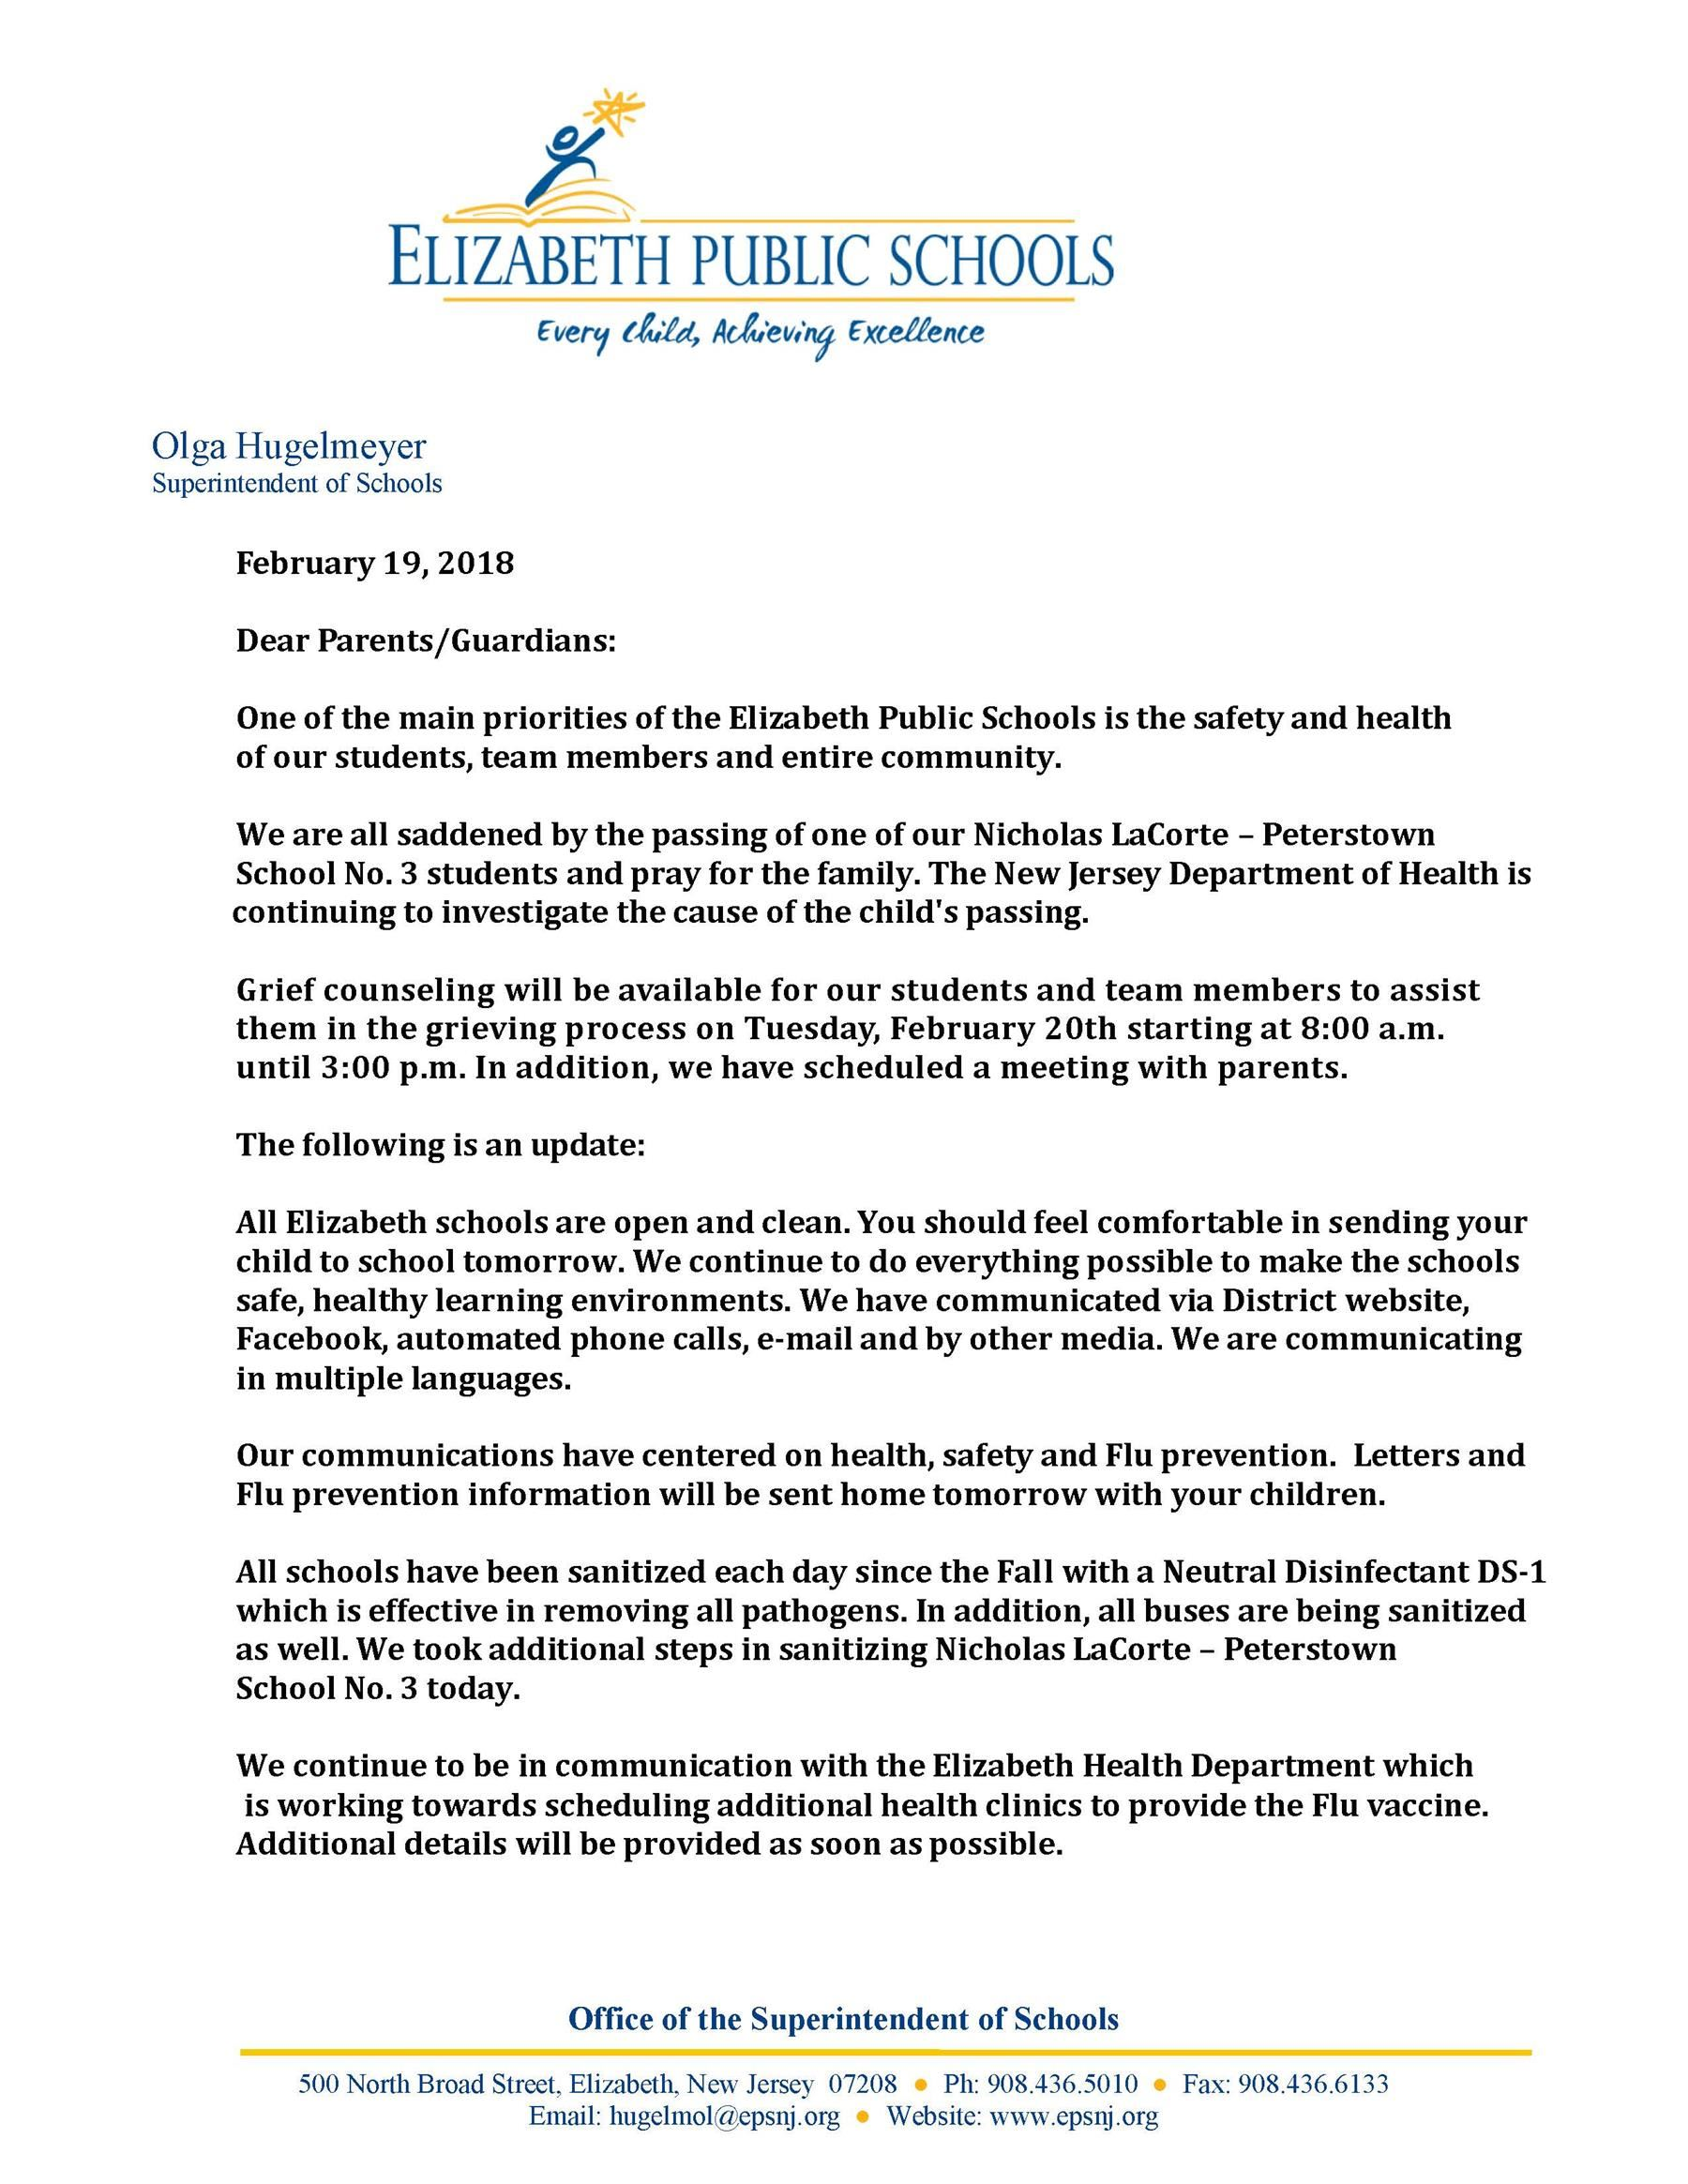 February 19th Letter to Parents Regarding Student Passing and Flu Prevention